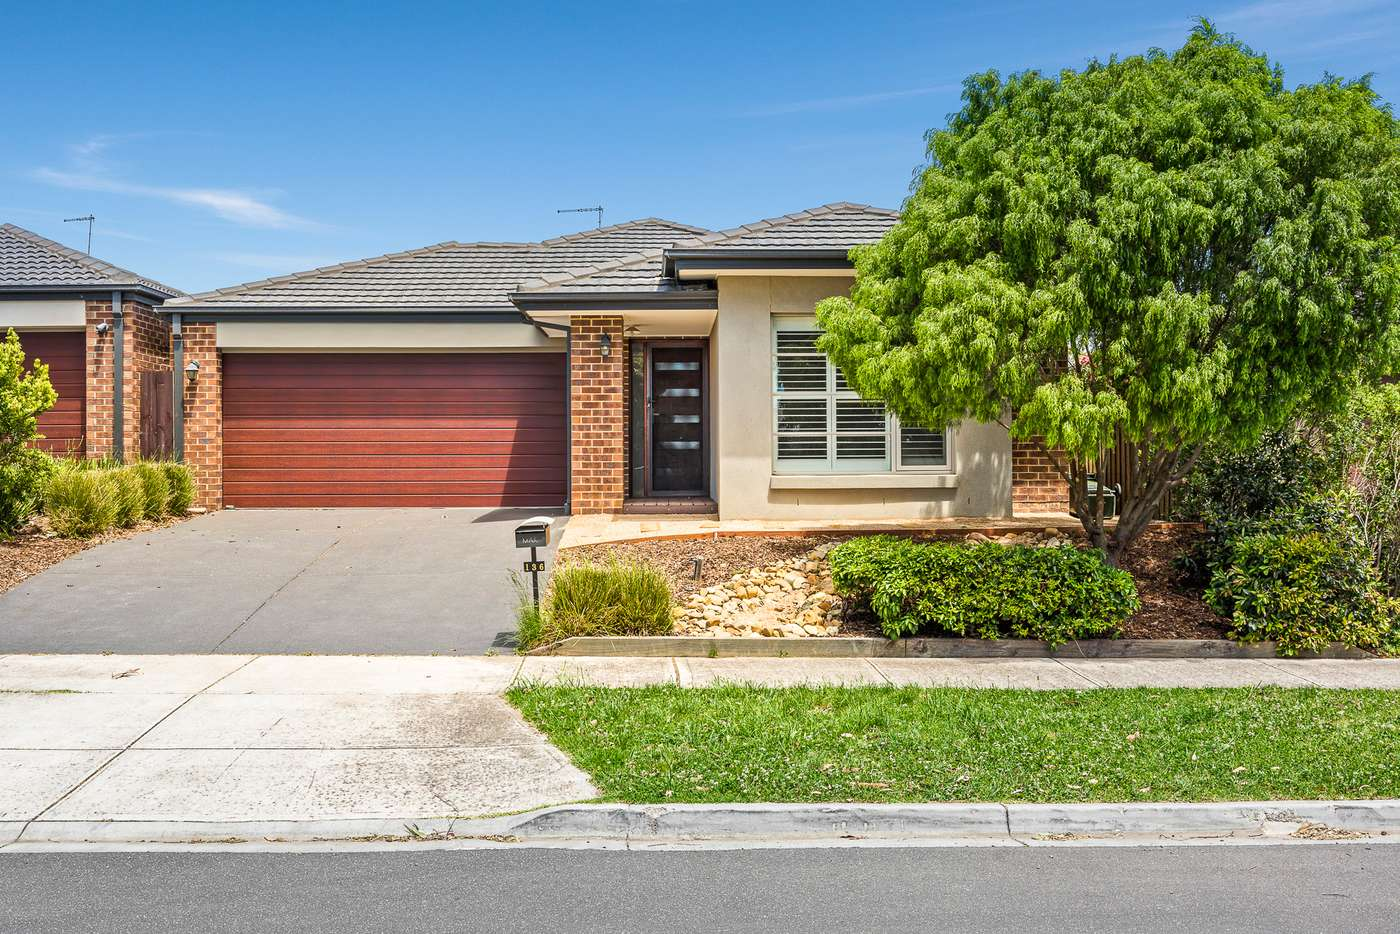 Main view of Homely house listing, 136 Elation  Boulevard, Doreen VIC 3754